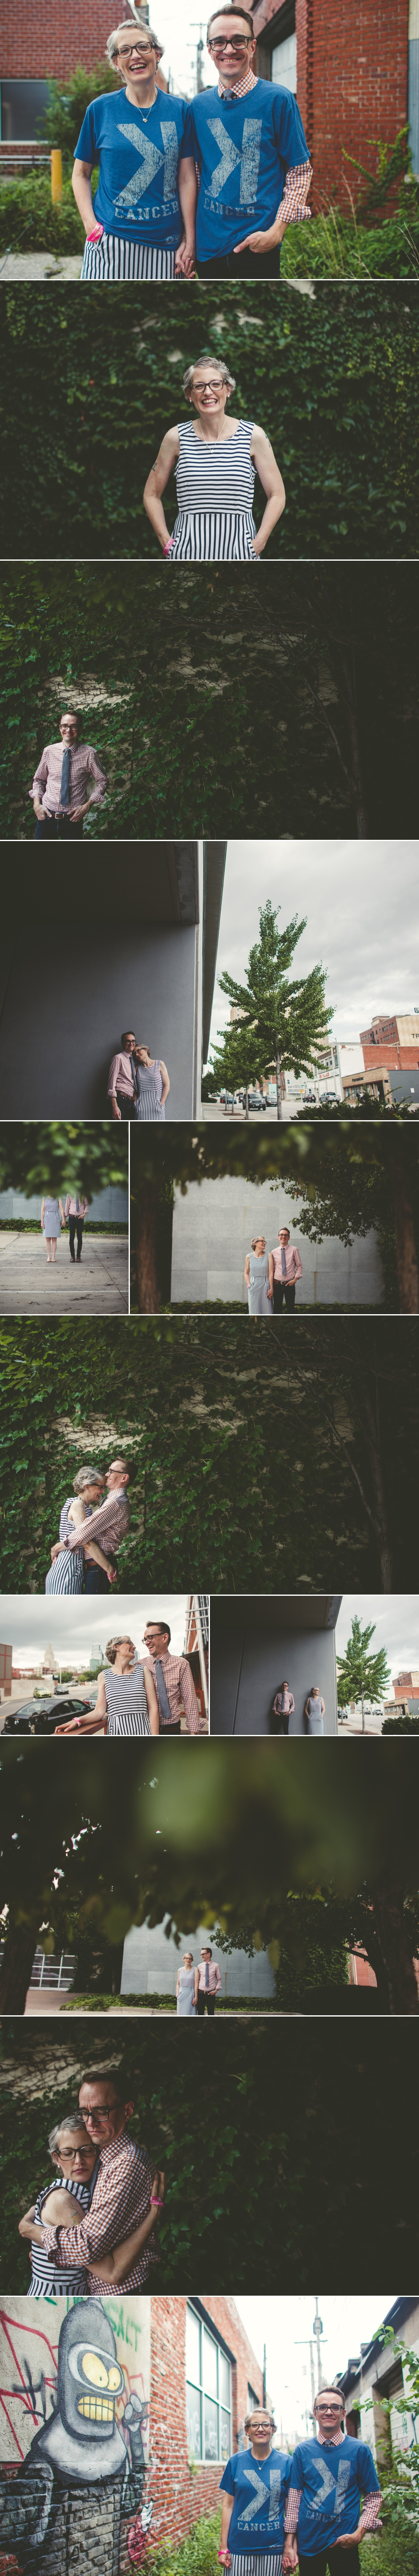 jason_domingues_photography_best_photographer_kansas_city_kc_creative_engagement_portrait_cancer_free_love_wedding_celebrate_downtown_2